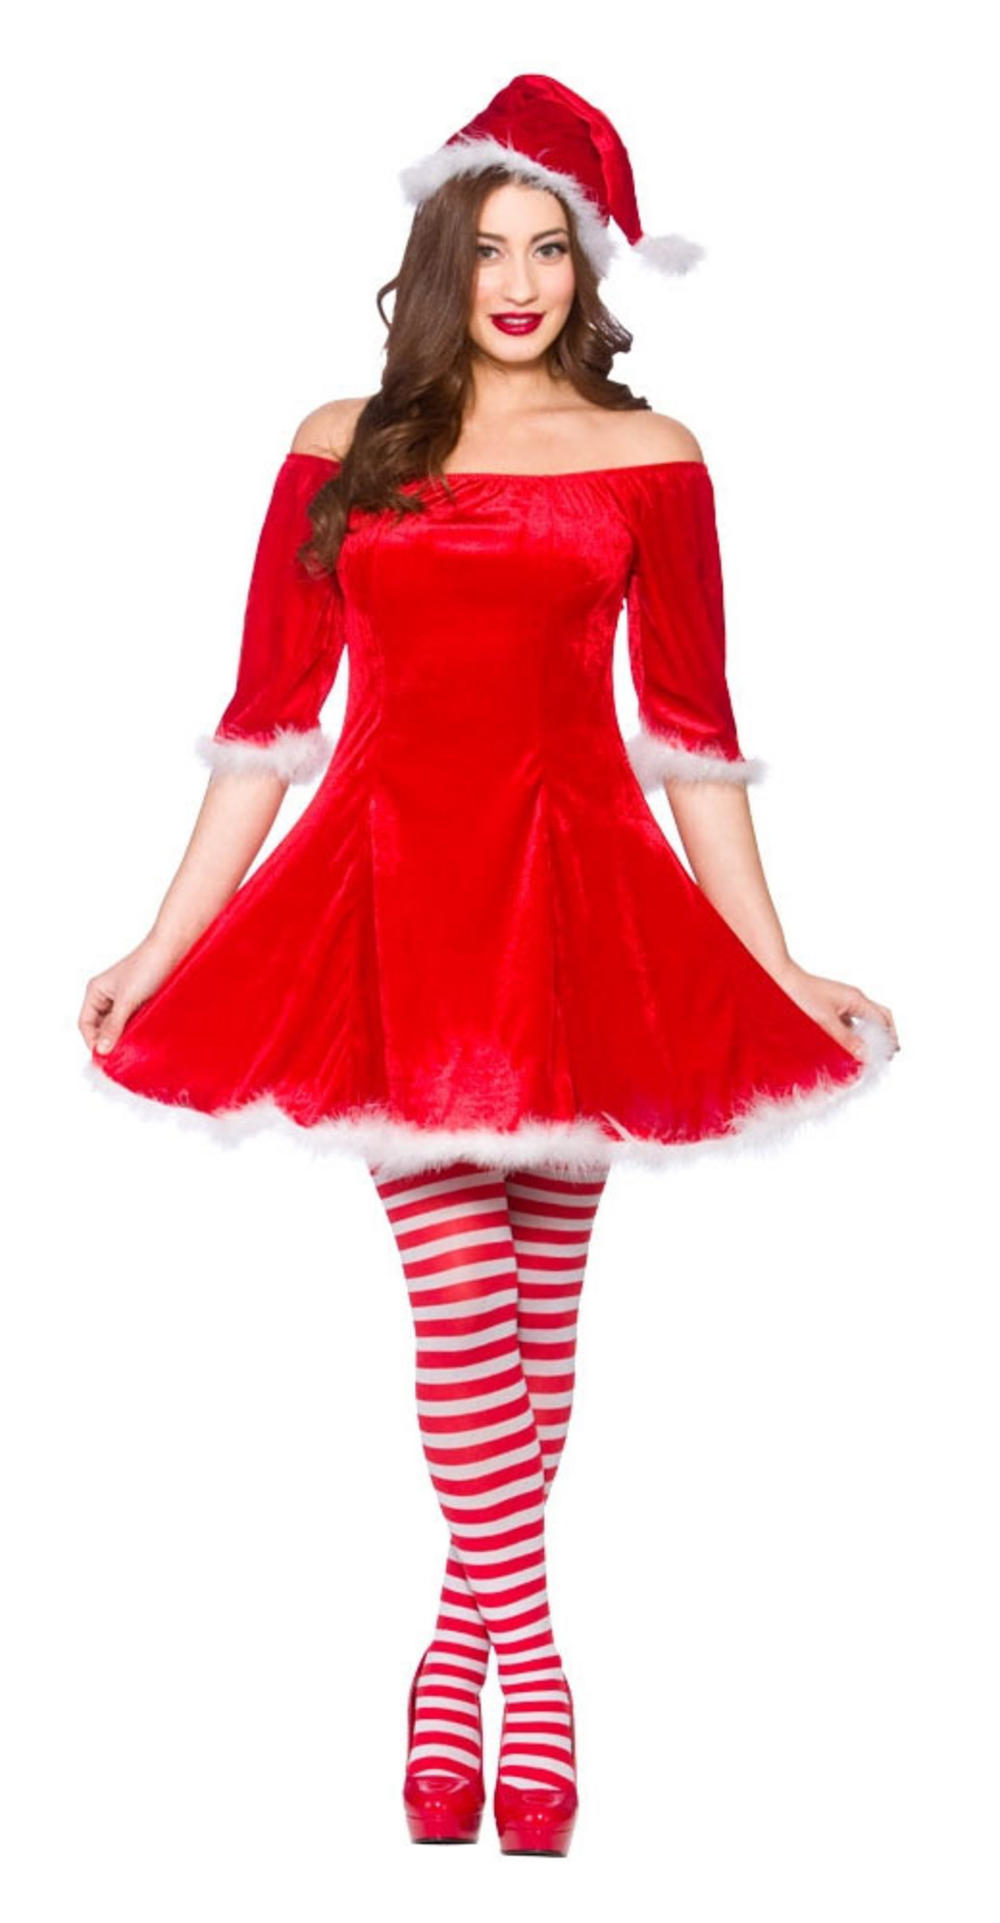 Sweet Santa Claus Costume